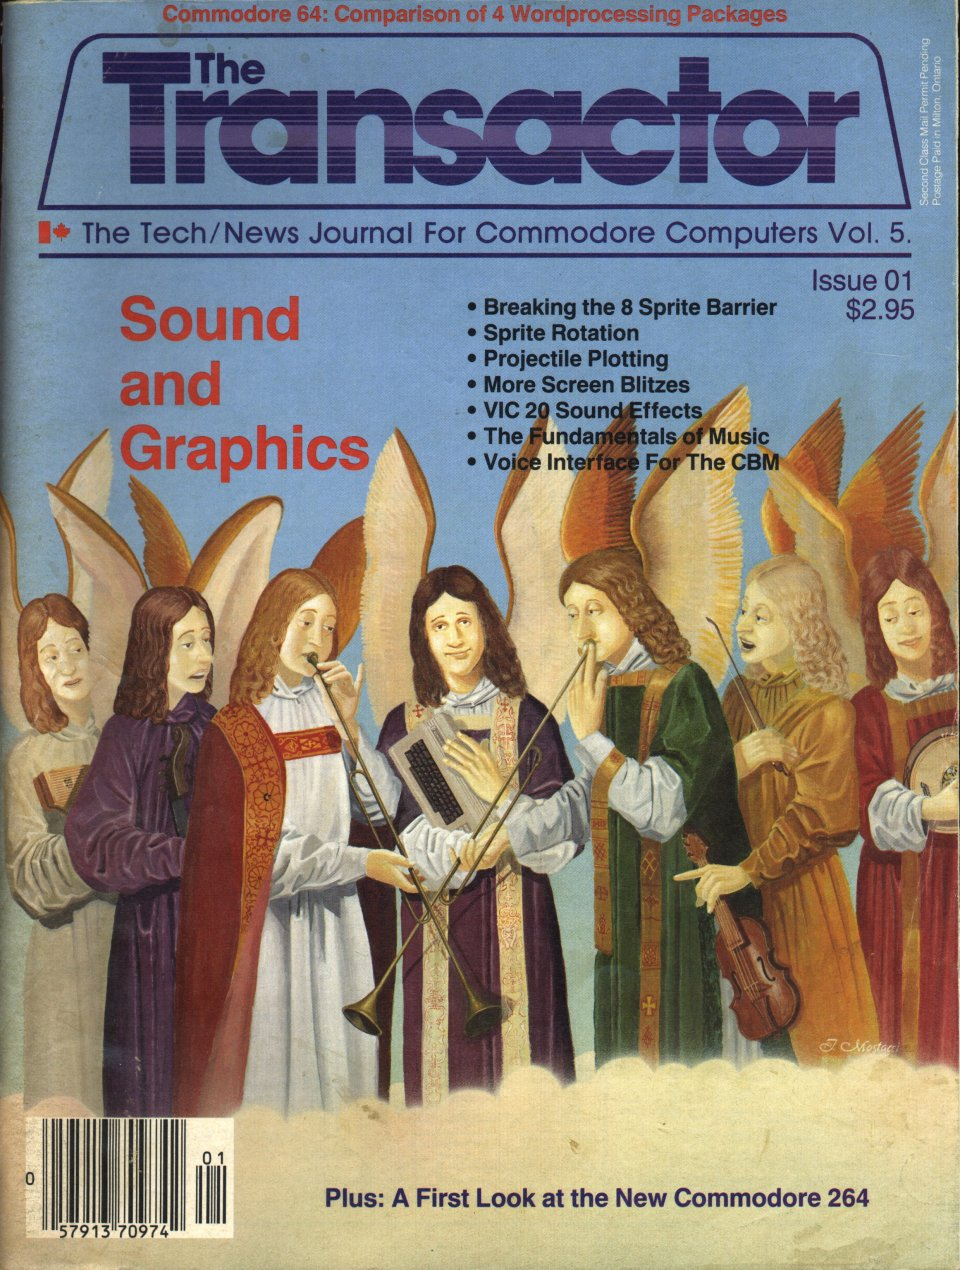 [Cover Page of The Transactor Volume 5, Issue 1: Sound and Graphics]